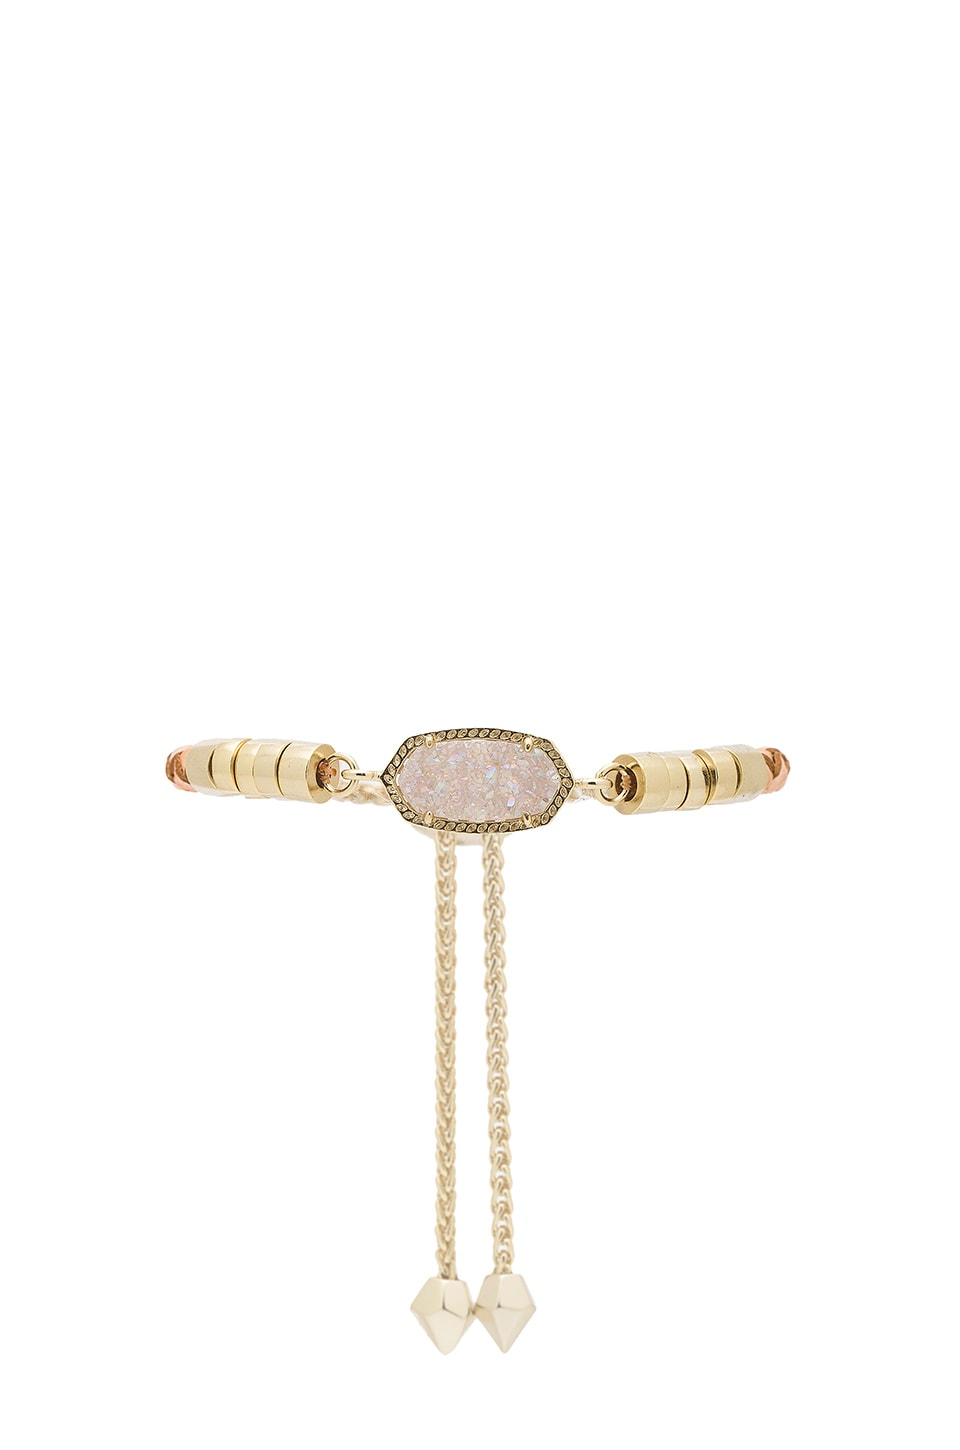 Kendra Scott Cruz Bracelet in Gold & Iridescent Drusy